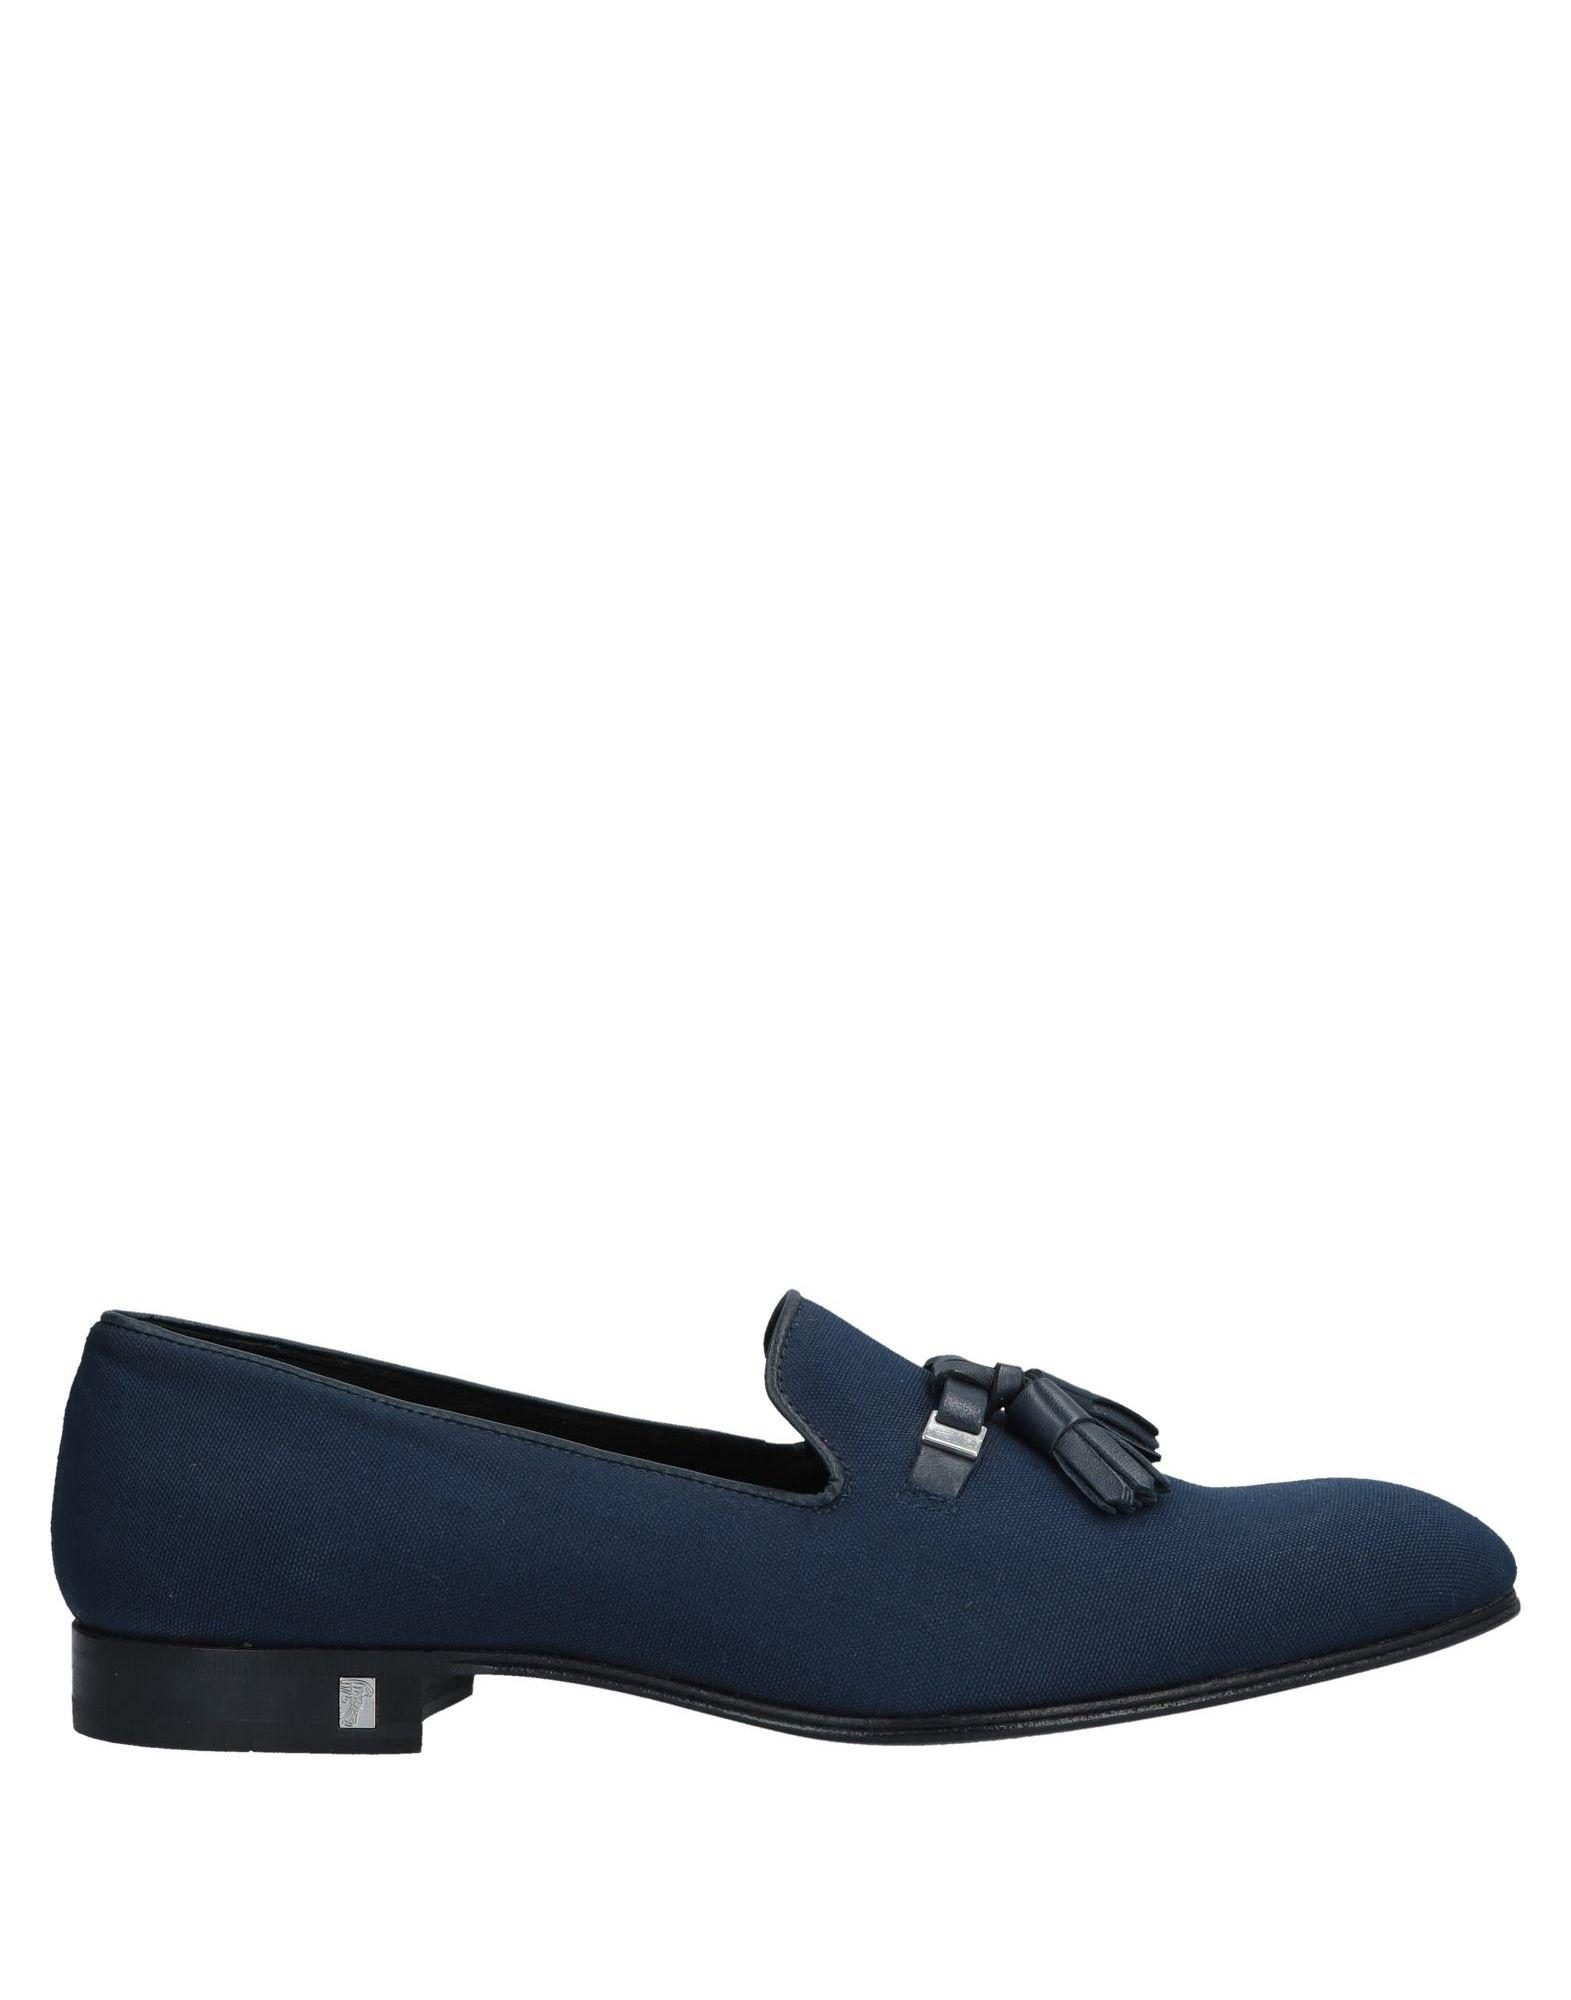 b1668bfc00 Versace Loafer in Blue for Men - Lyst